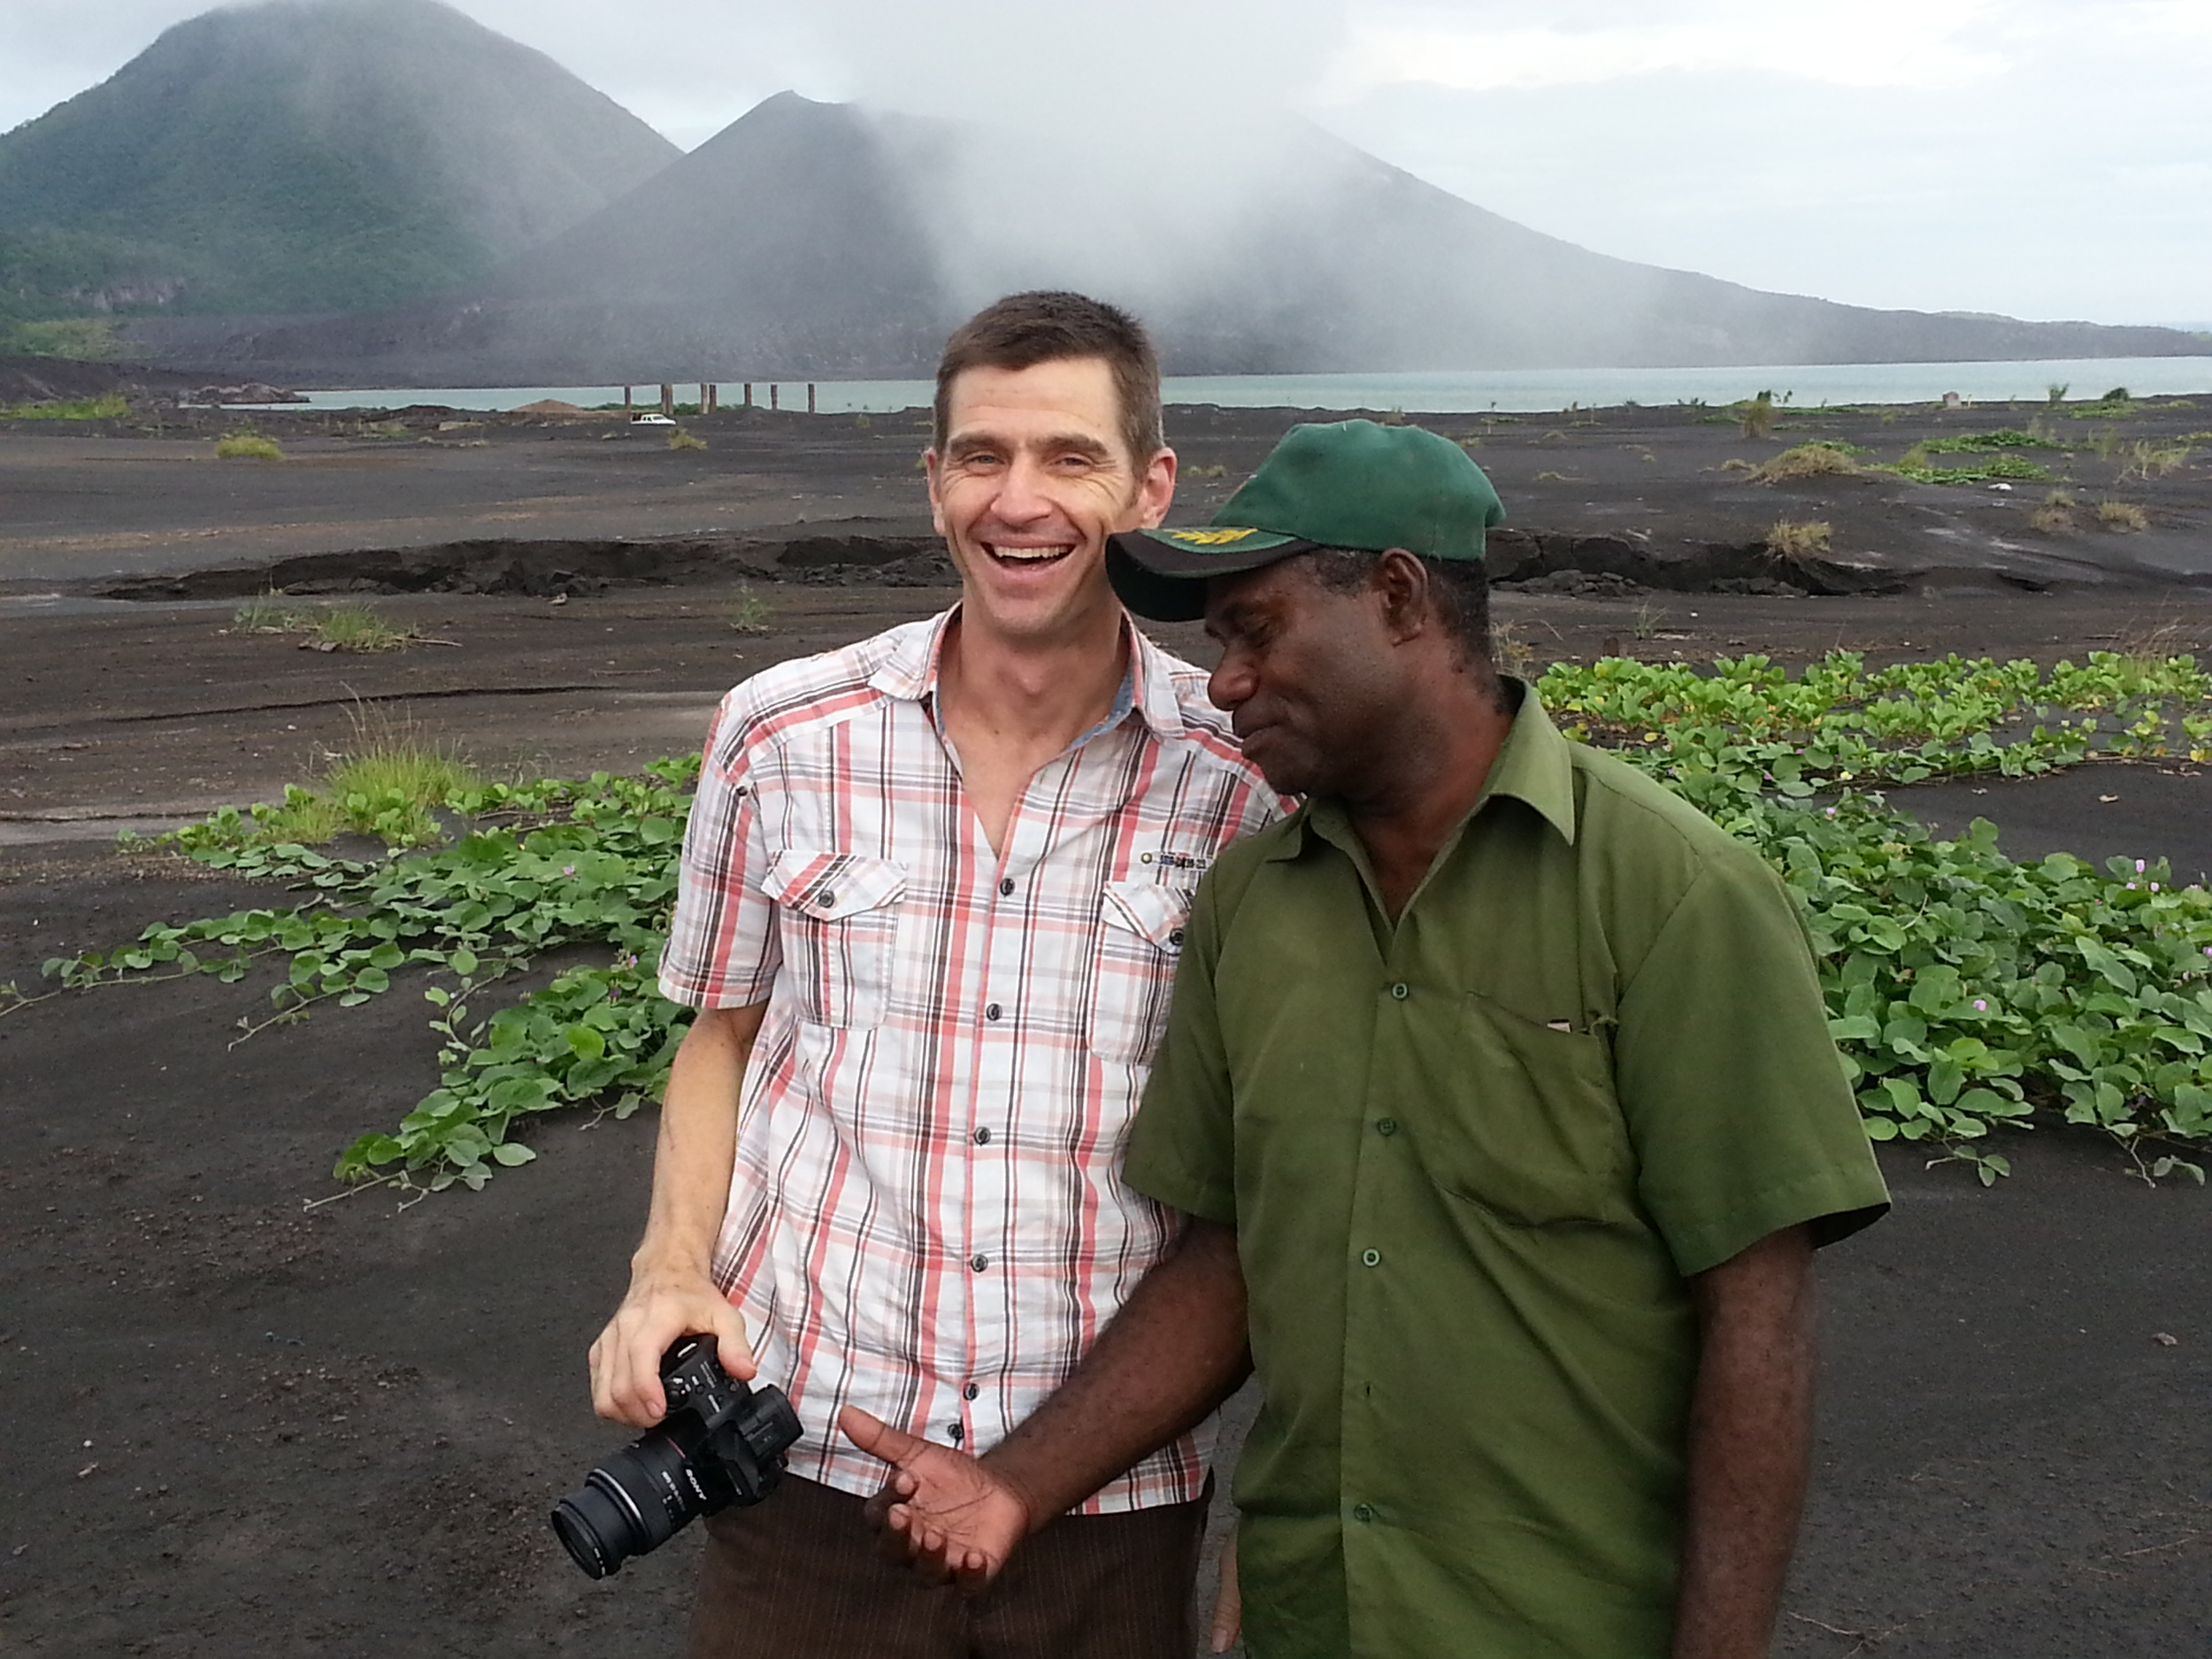 WITH pastor friend in png